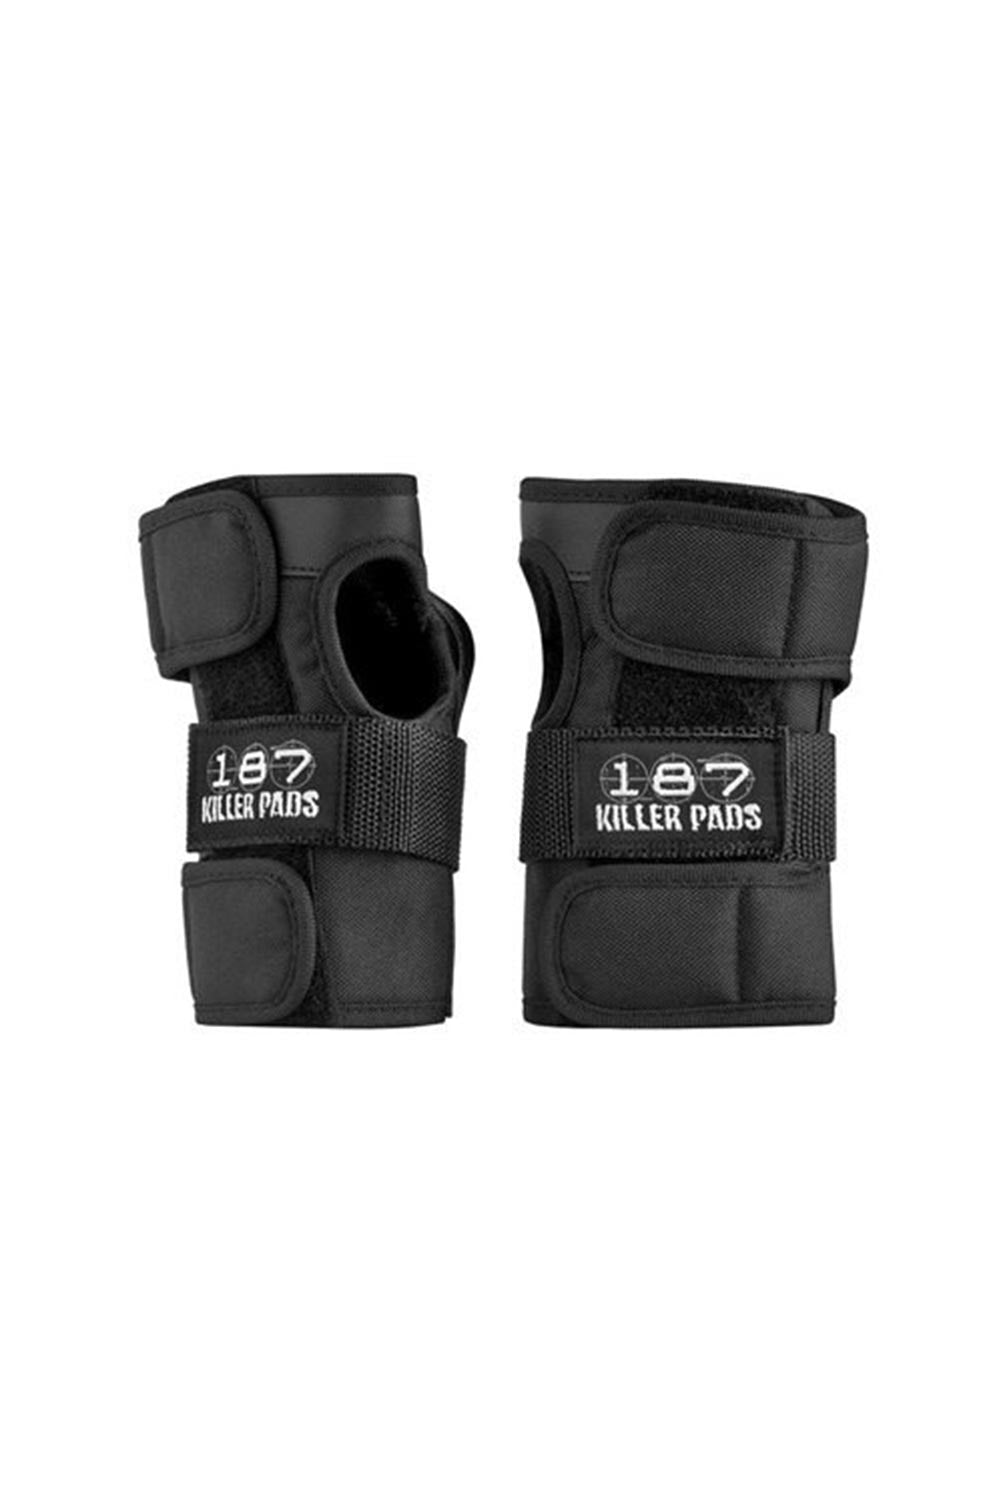 Buy 187 Wrist Guards | Buy 187 Killer Pads & Protective Gear Online